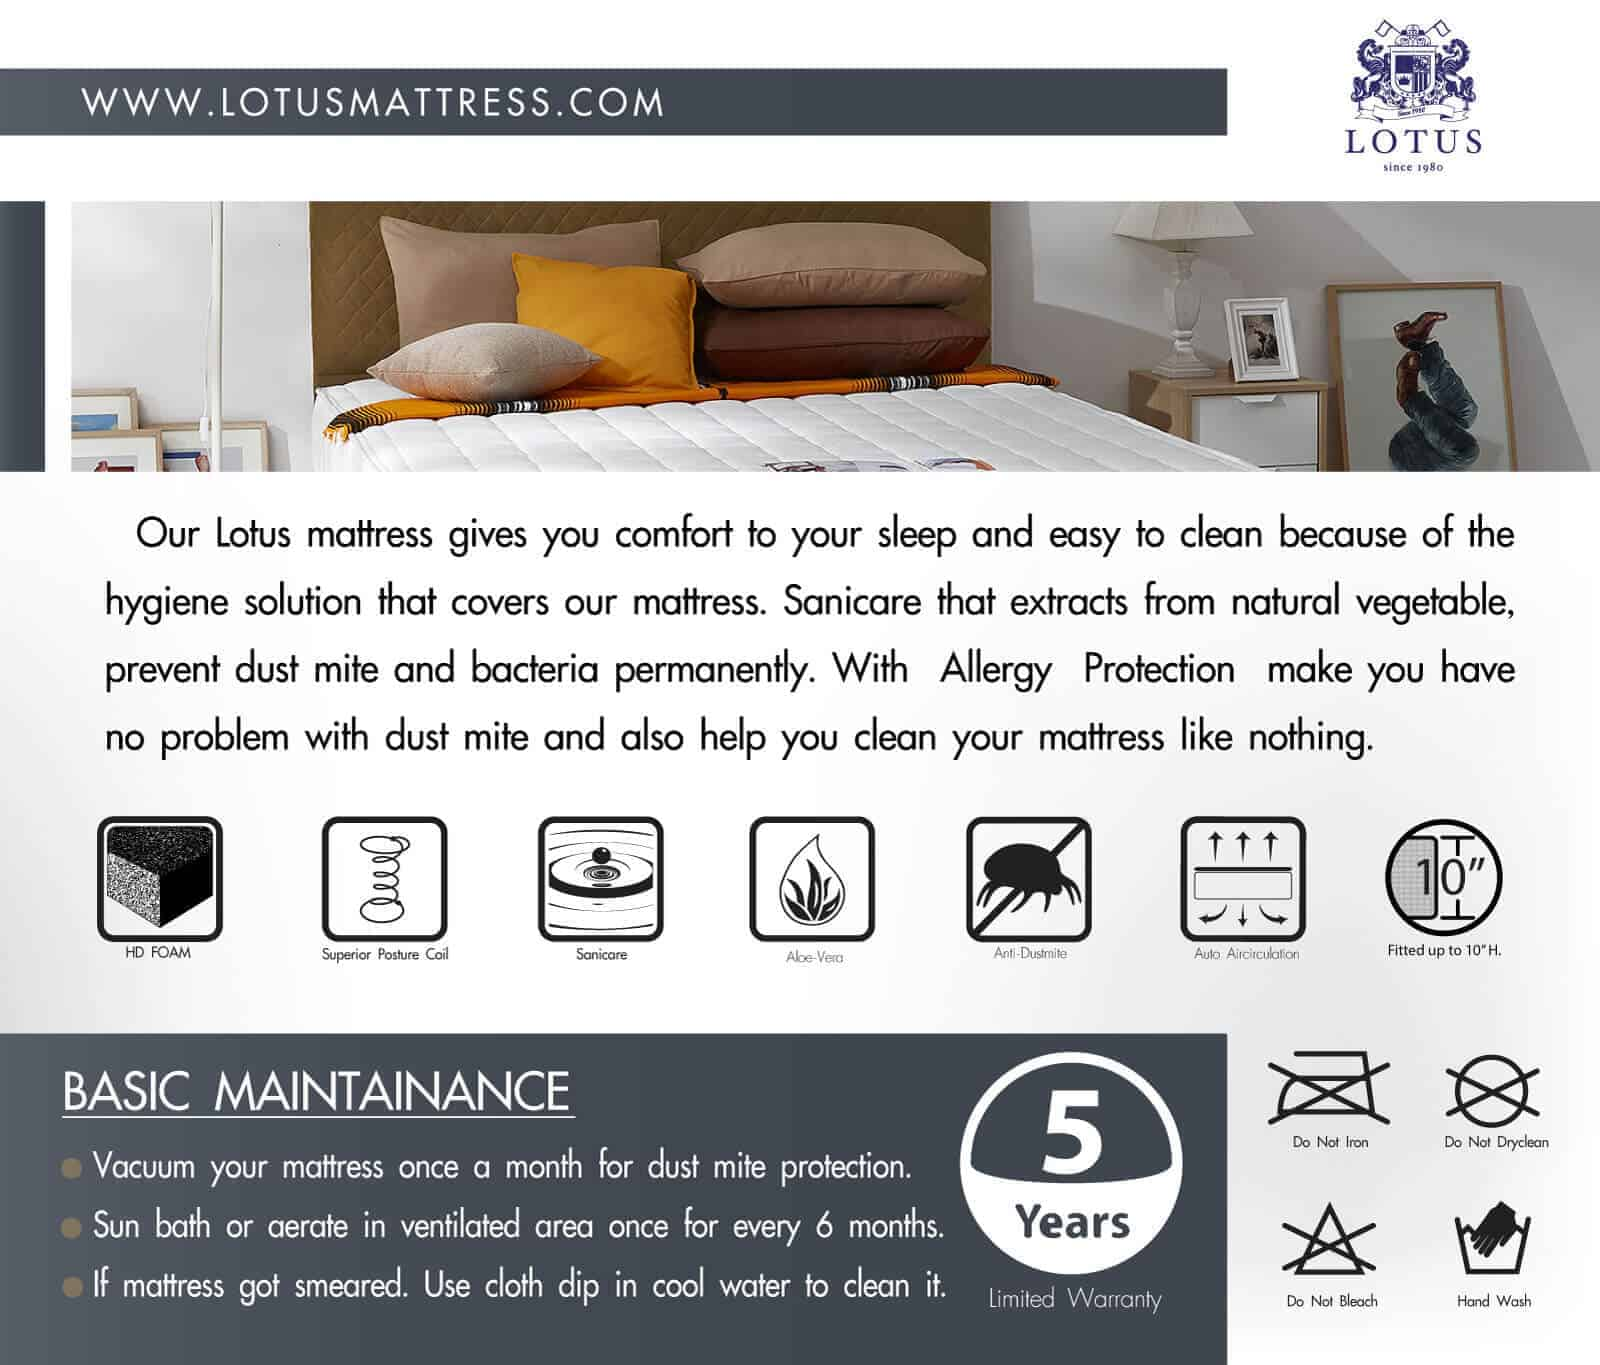 Lotus Mattress - O-Season Deluxe I 14